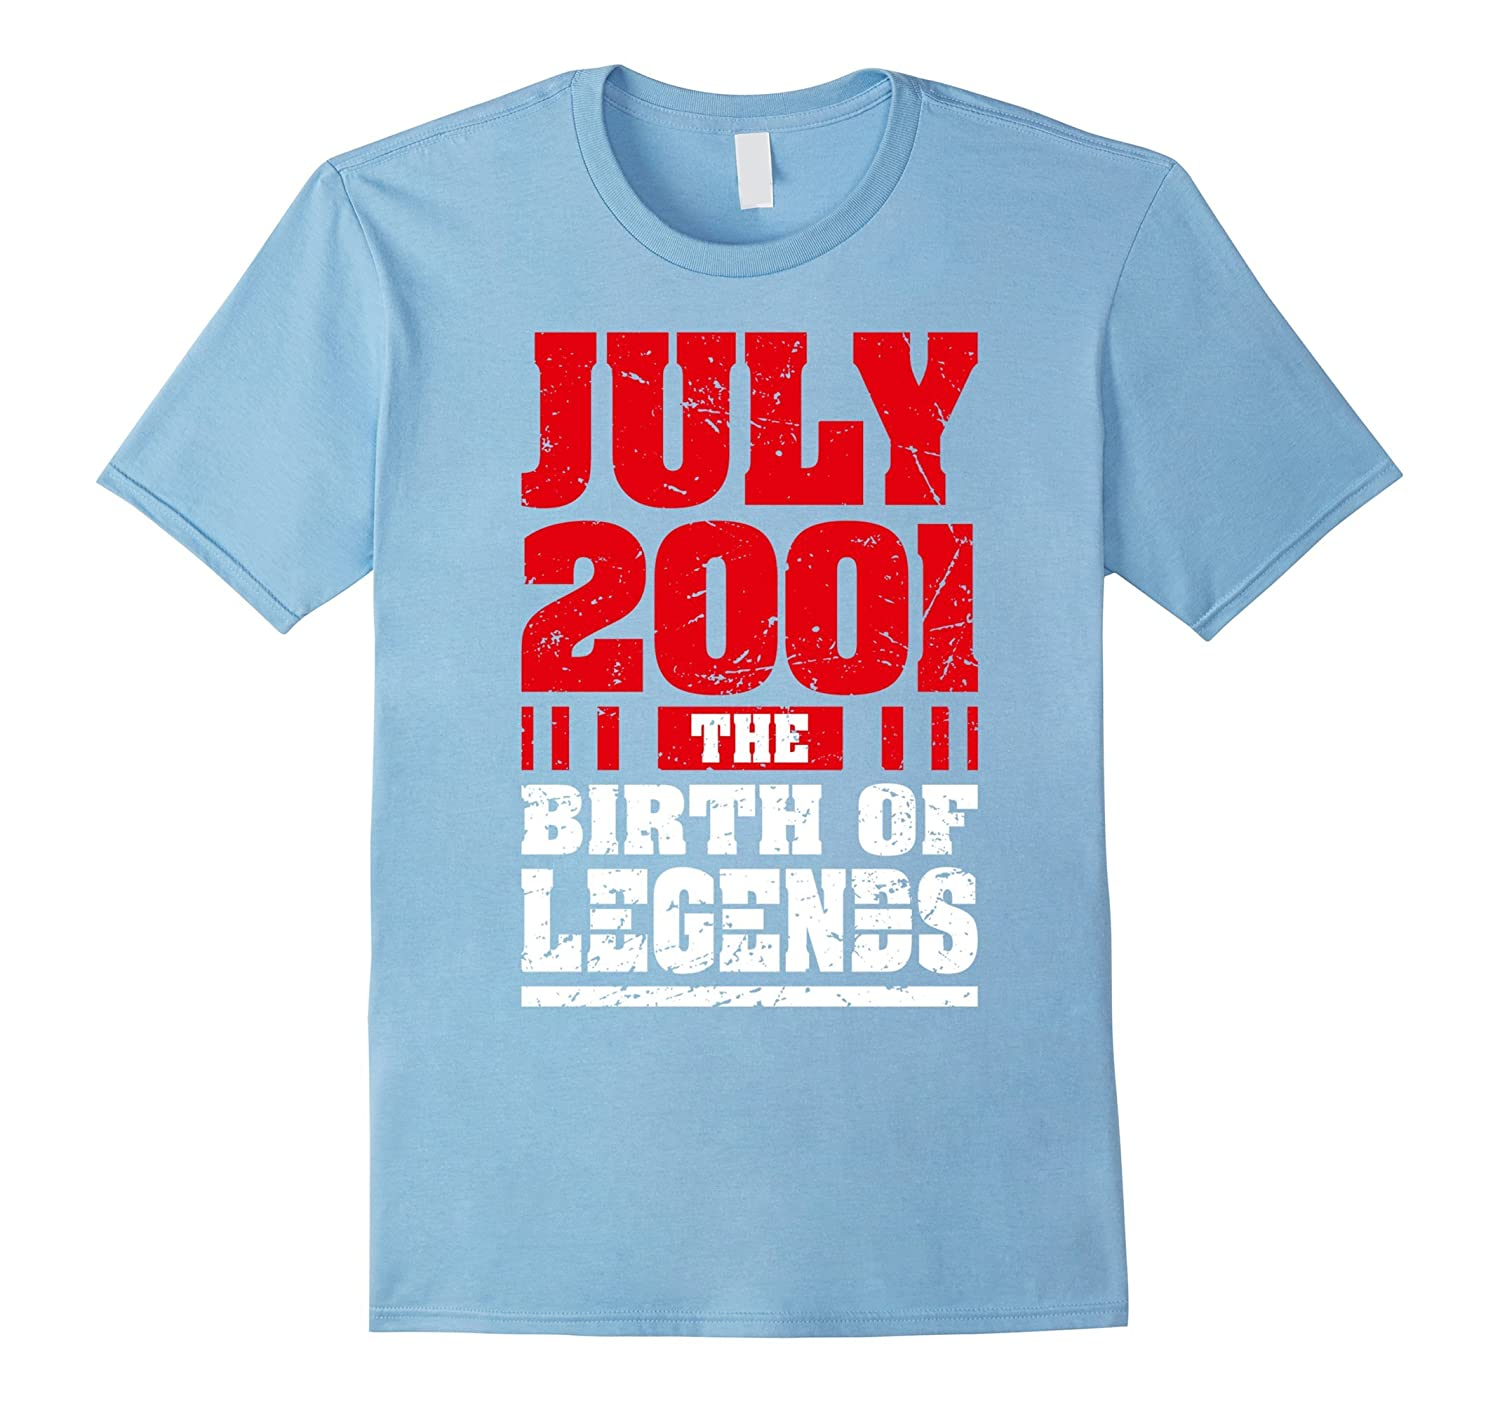 16th Birthday T Shirt Gifts July 2001 The Birth Of Legends PL